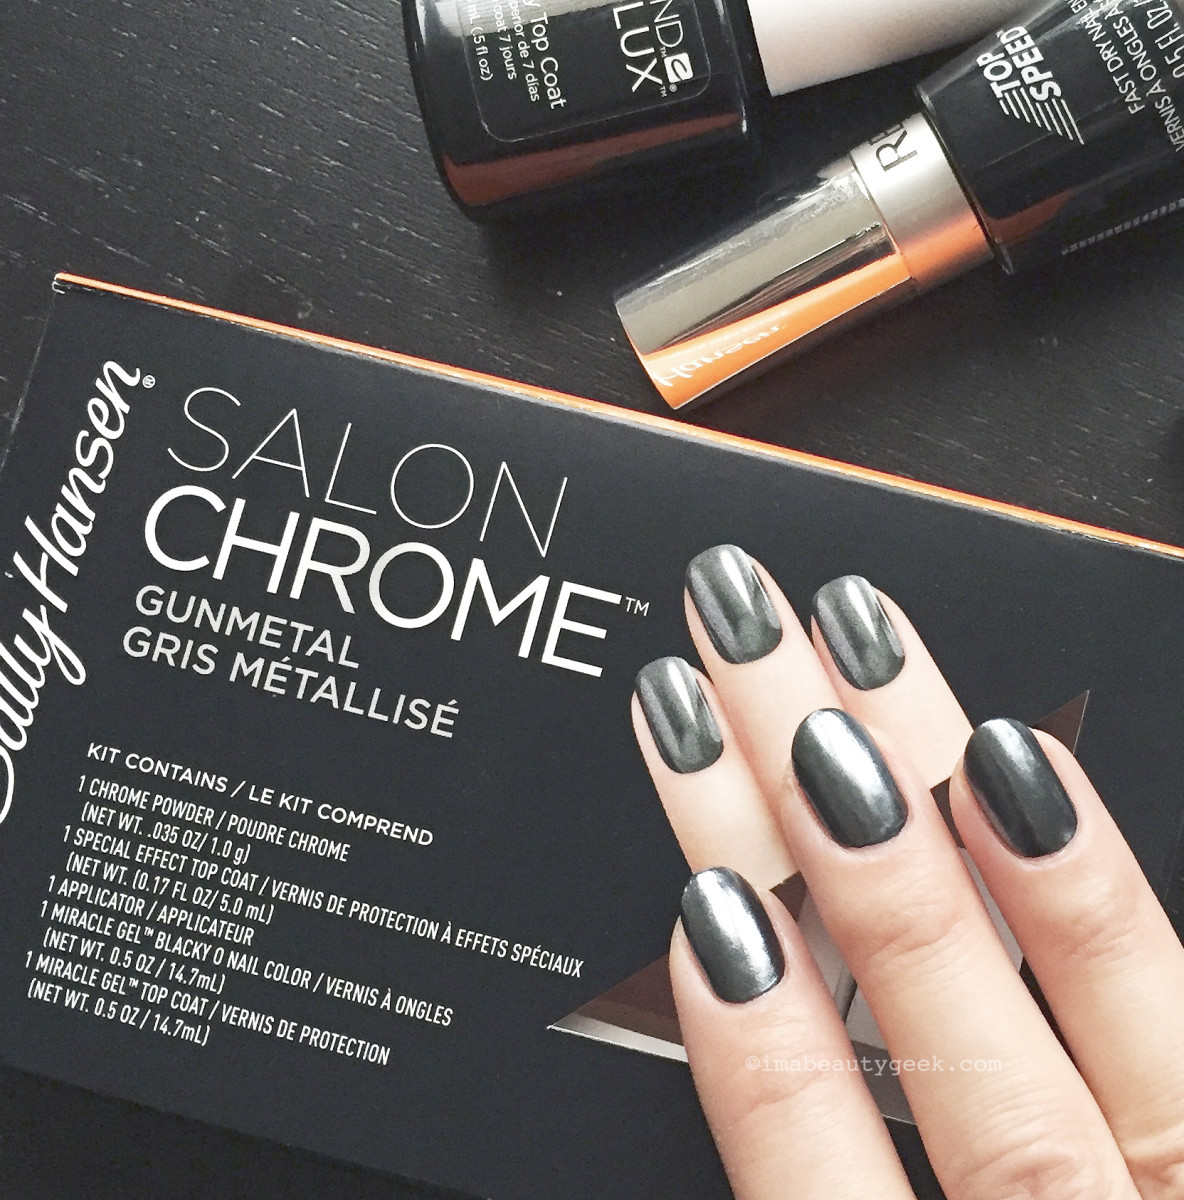 HOW TO DIY CHROME NAILS AT HOME OVER REGULAR NAIL POLISH - Beautygeeks